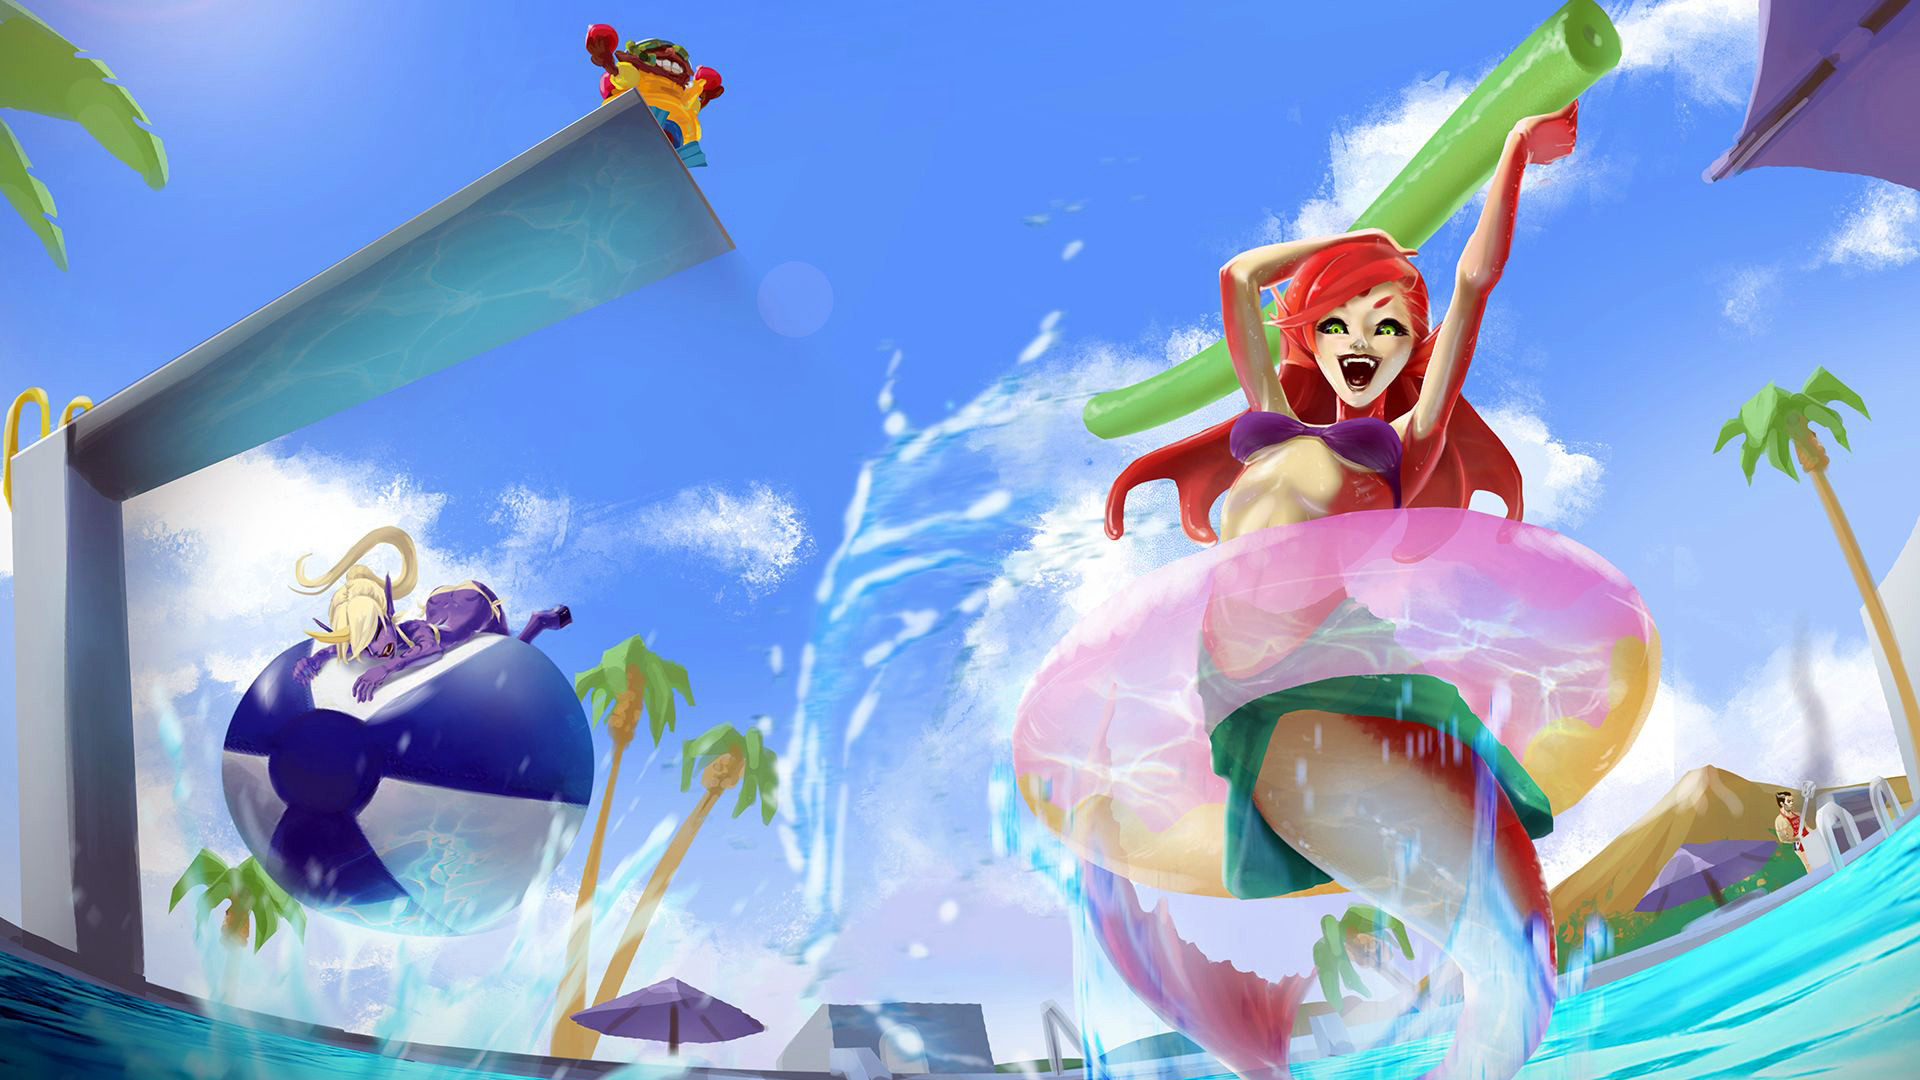 1920x1080 nami pool party skin art league of legends game girl champion